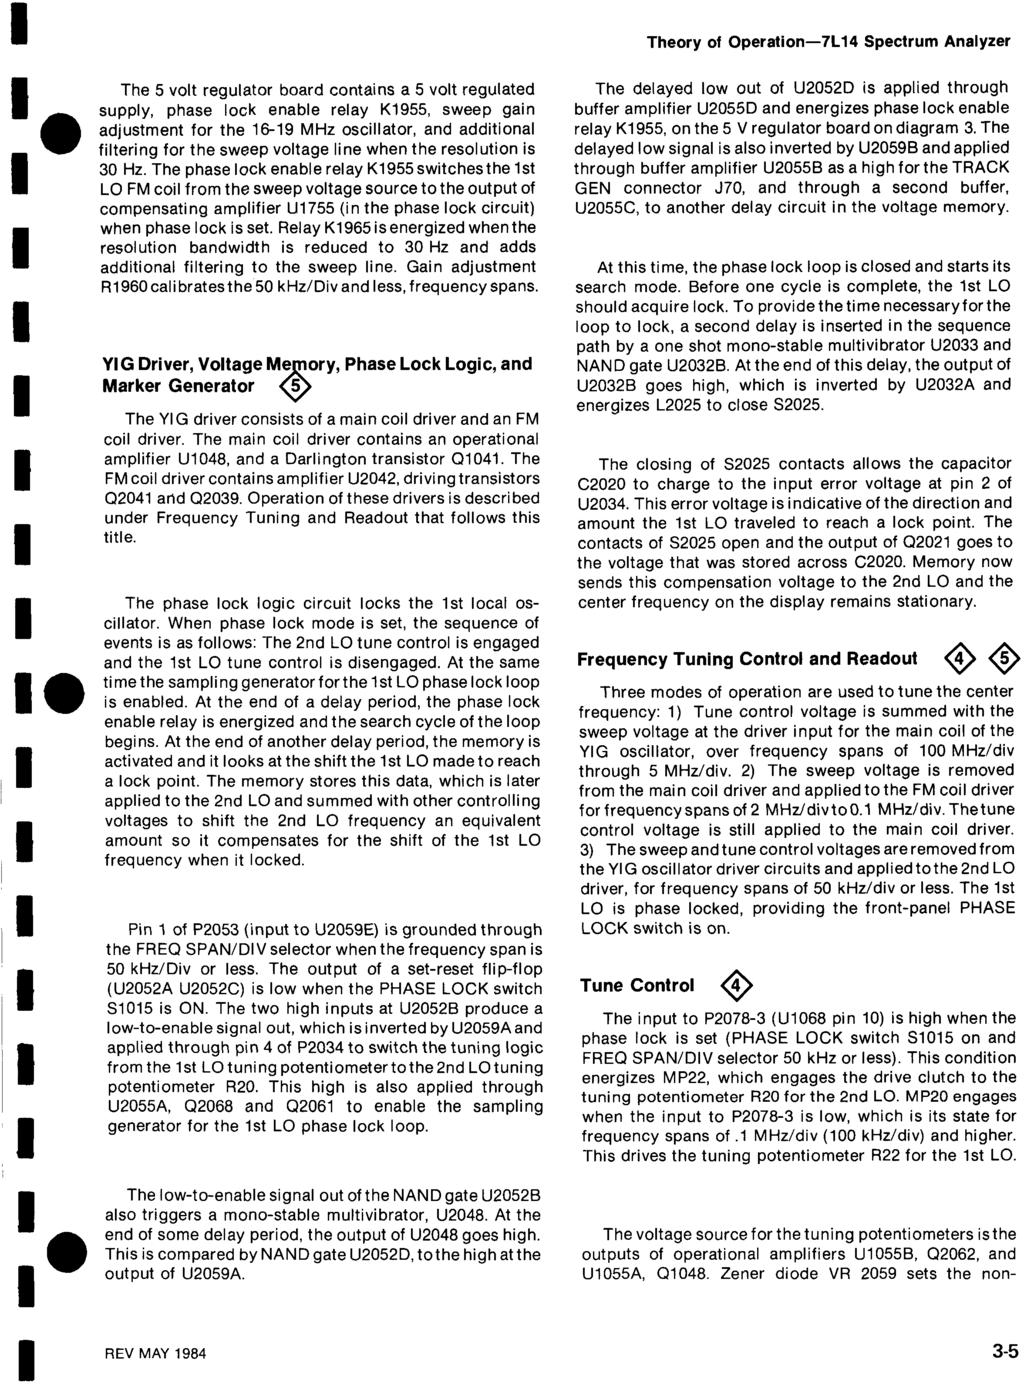 Spectrum Analyzer Tek Revised Mar 1985 Options Included Please Opamp Monostable And The Circuit Theory Of Operation 7l14 5 Volt Regulator Board Contains A